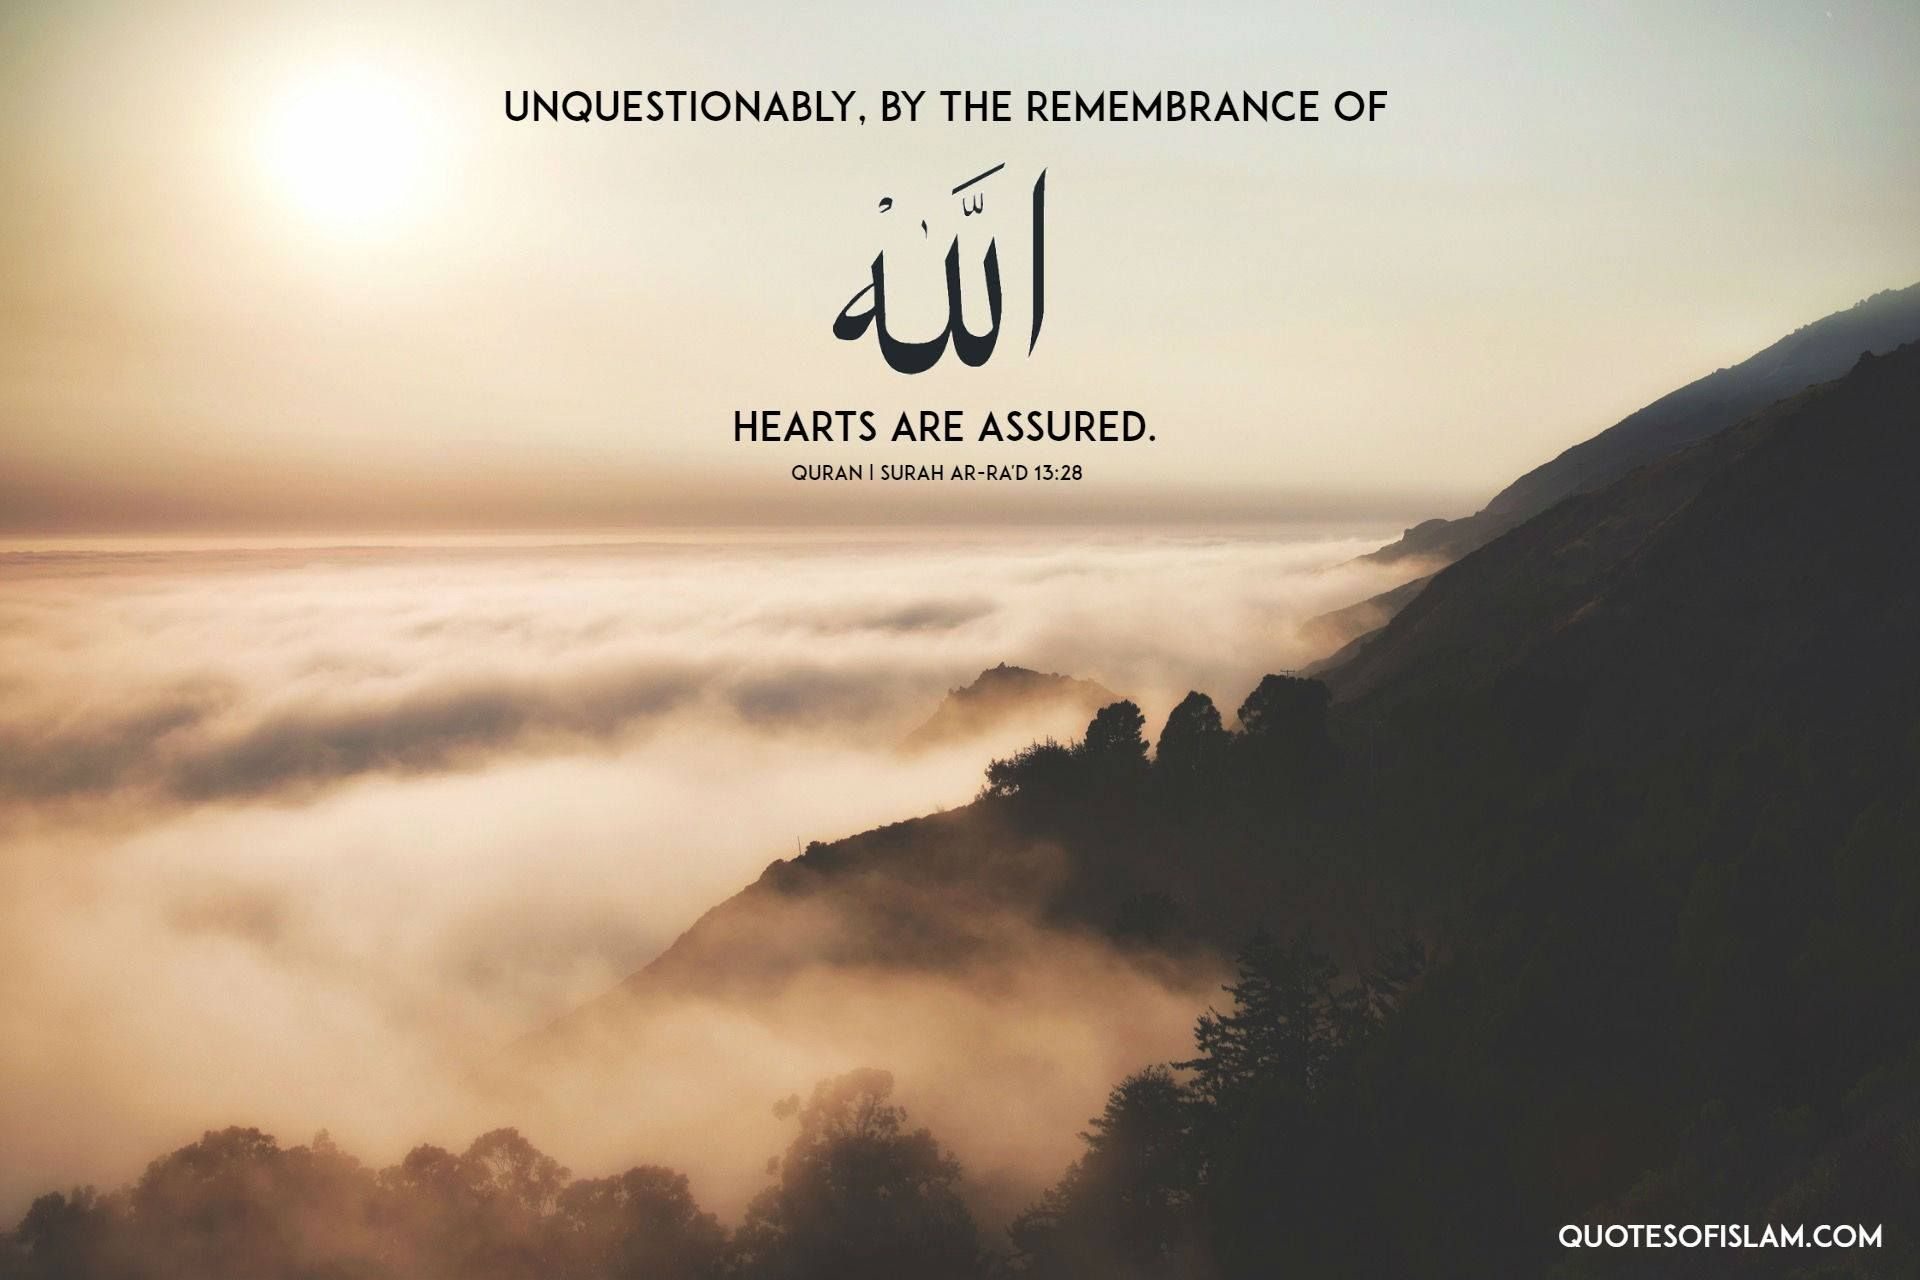 Hd Islamic Wallpapers With Quotes Specially Designed By Qoi